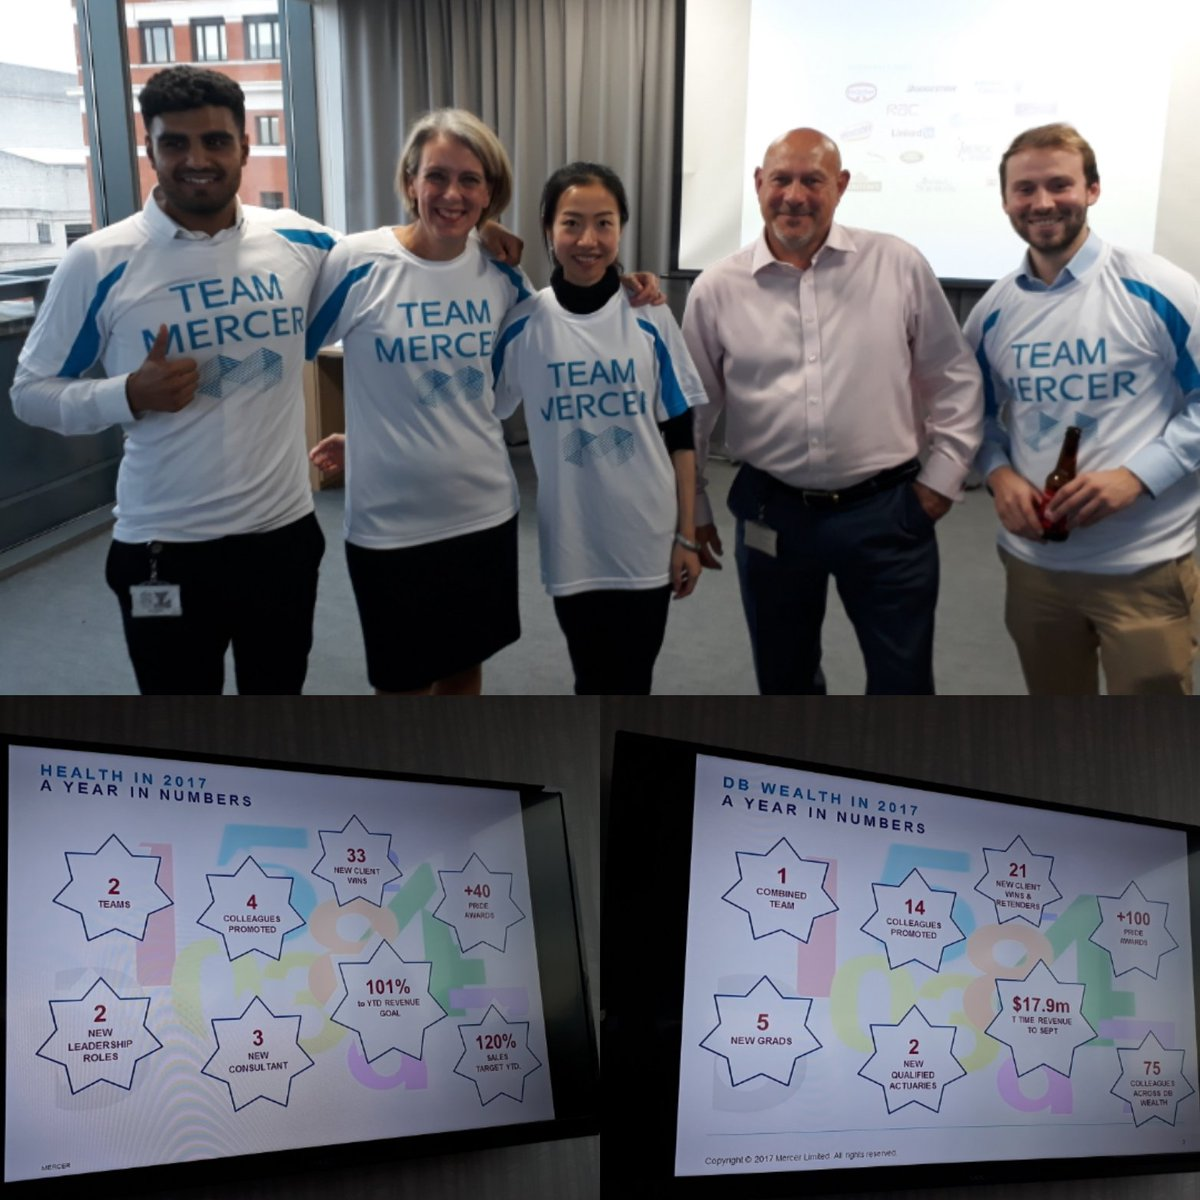 Thank you for joining us at @MercerBirm today @ferland_martine it was great to talk you through our #WIRELESS network &amp; share our successes! <br>http://pic.twitter.com/mcuGDDSJM5